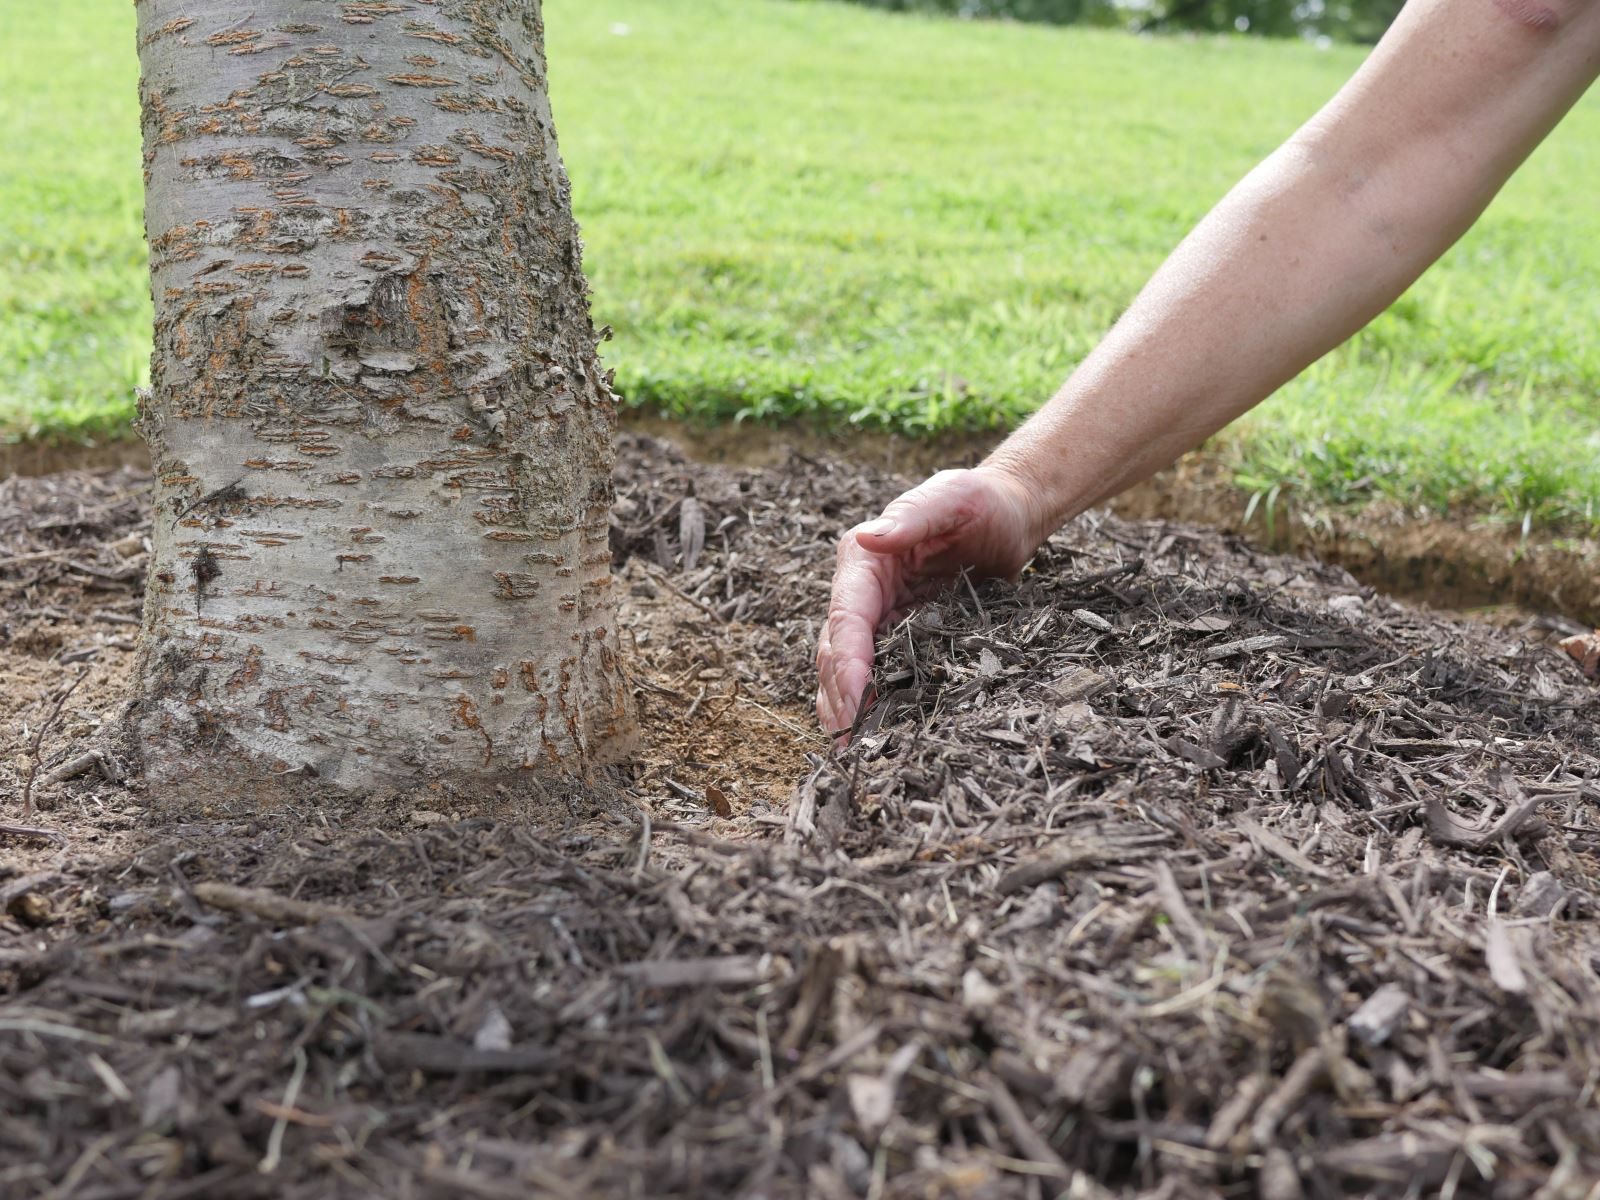 Push mulch away from the tree